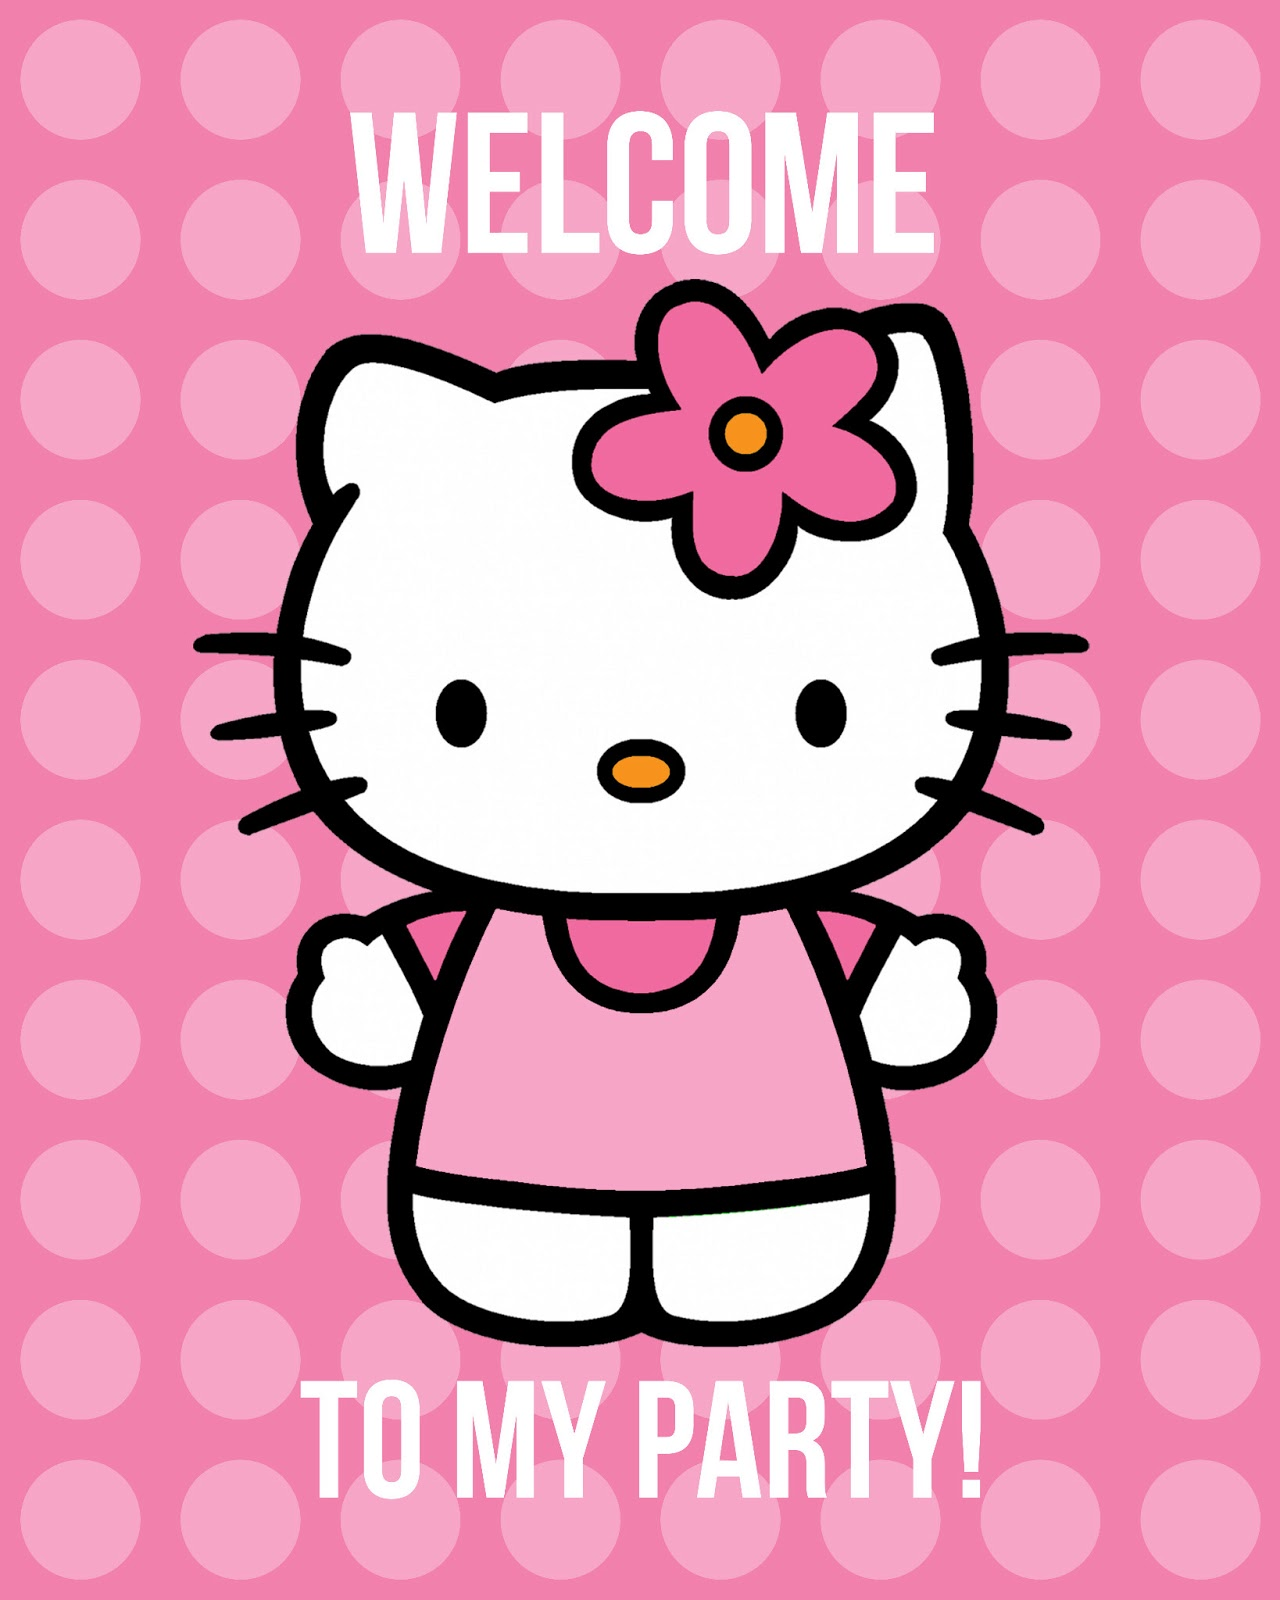 All Things Simple Simple Celebrations Hello Kitty Party Printables - Free hello kitty birthday invitation templates